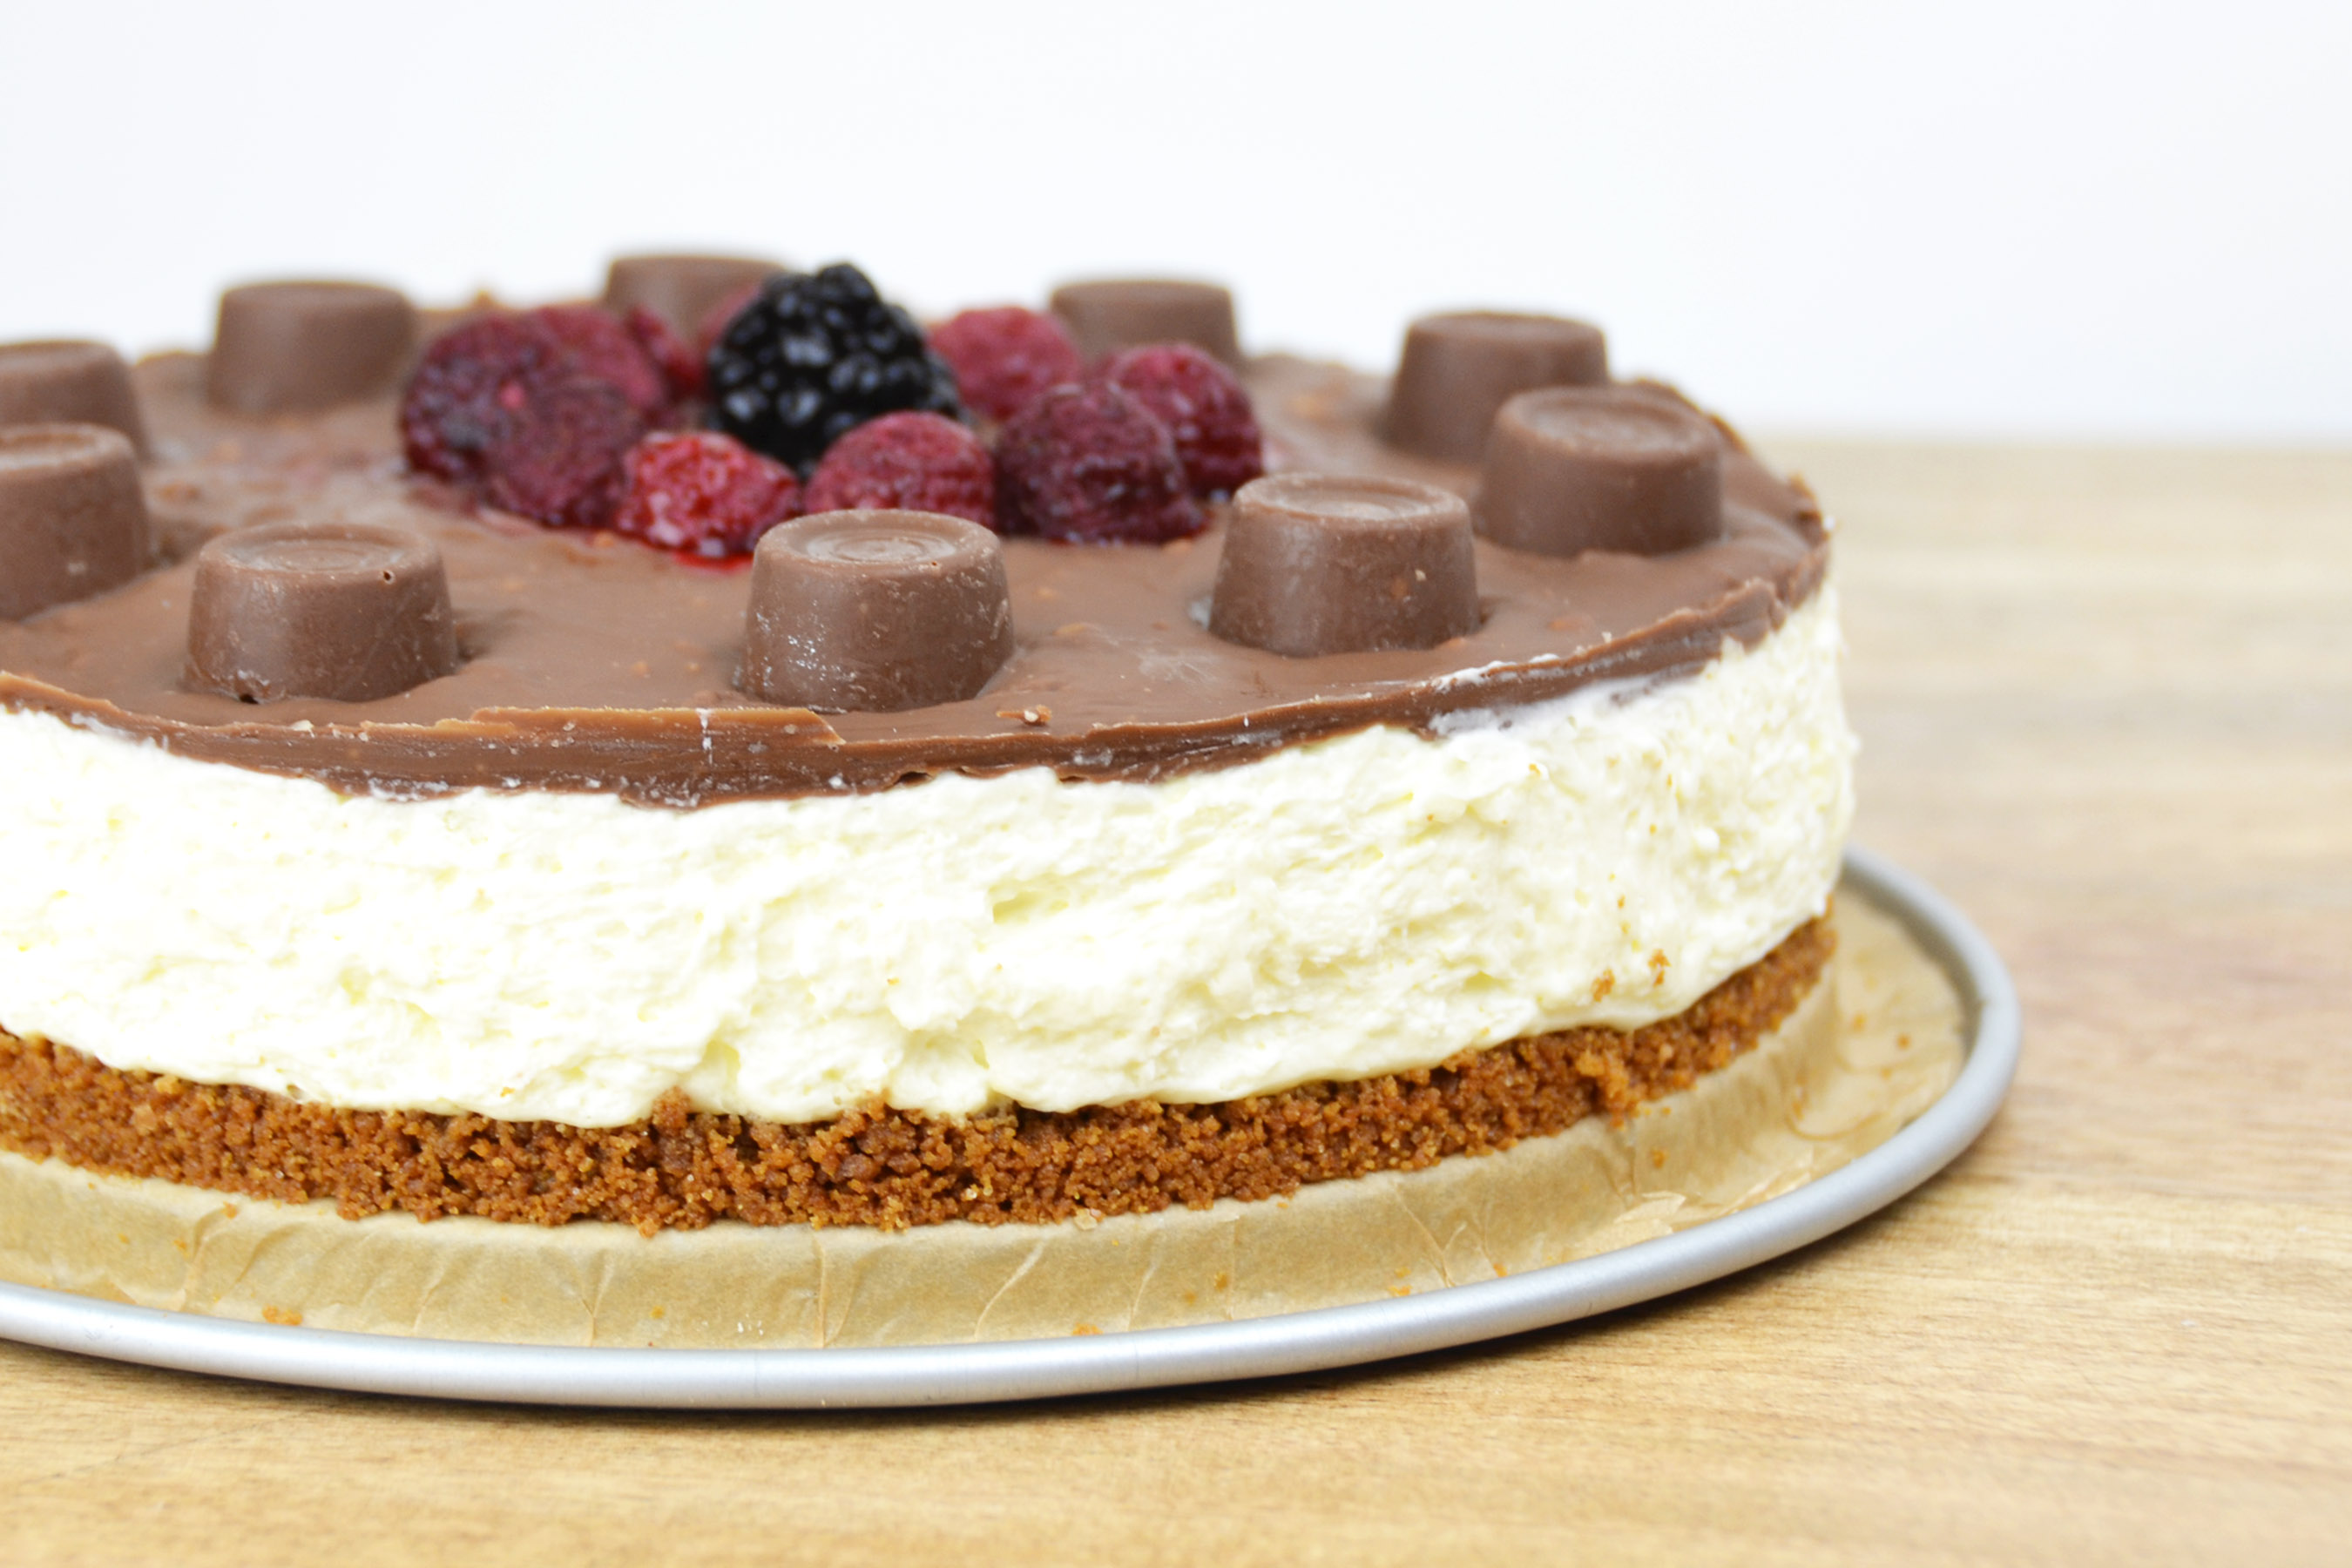 Tony's salted caramel cheesecake met rolo's